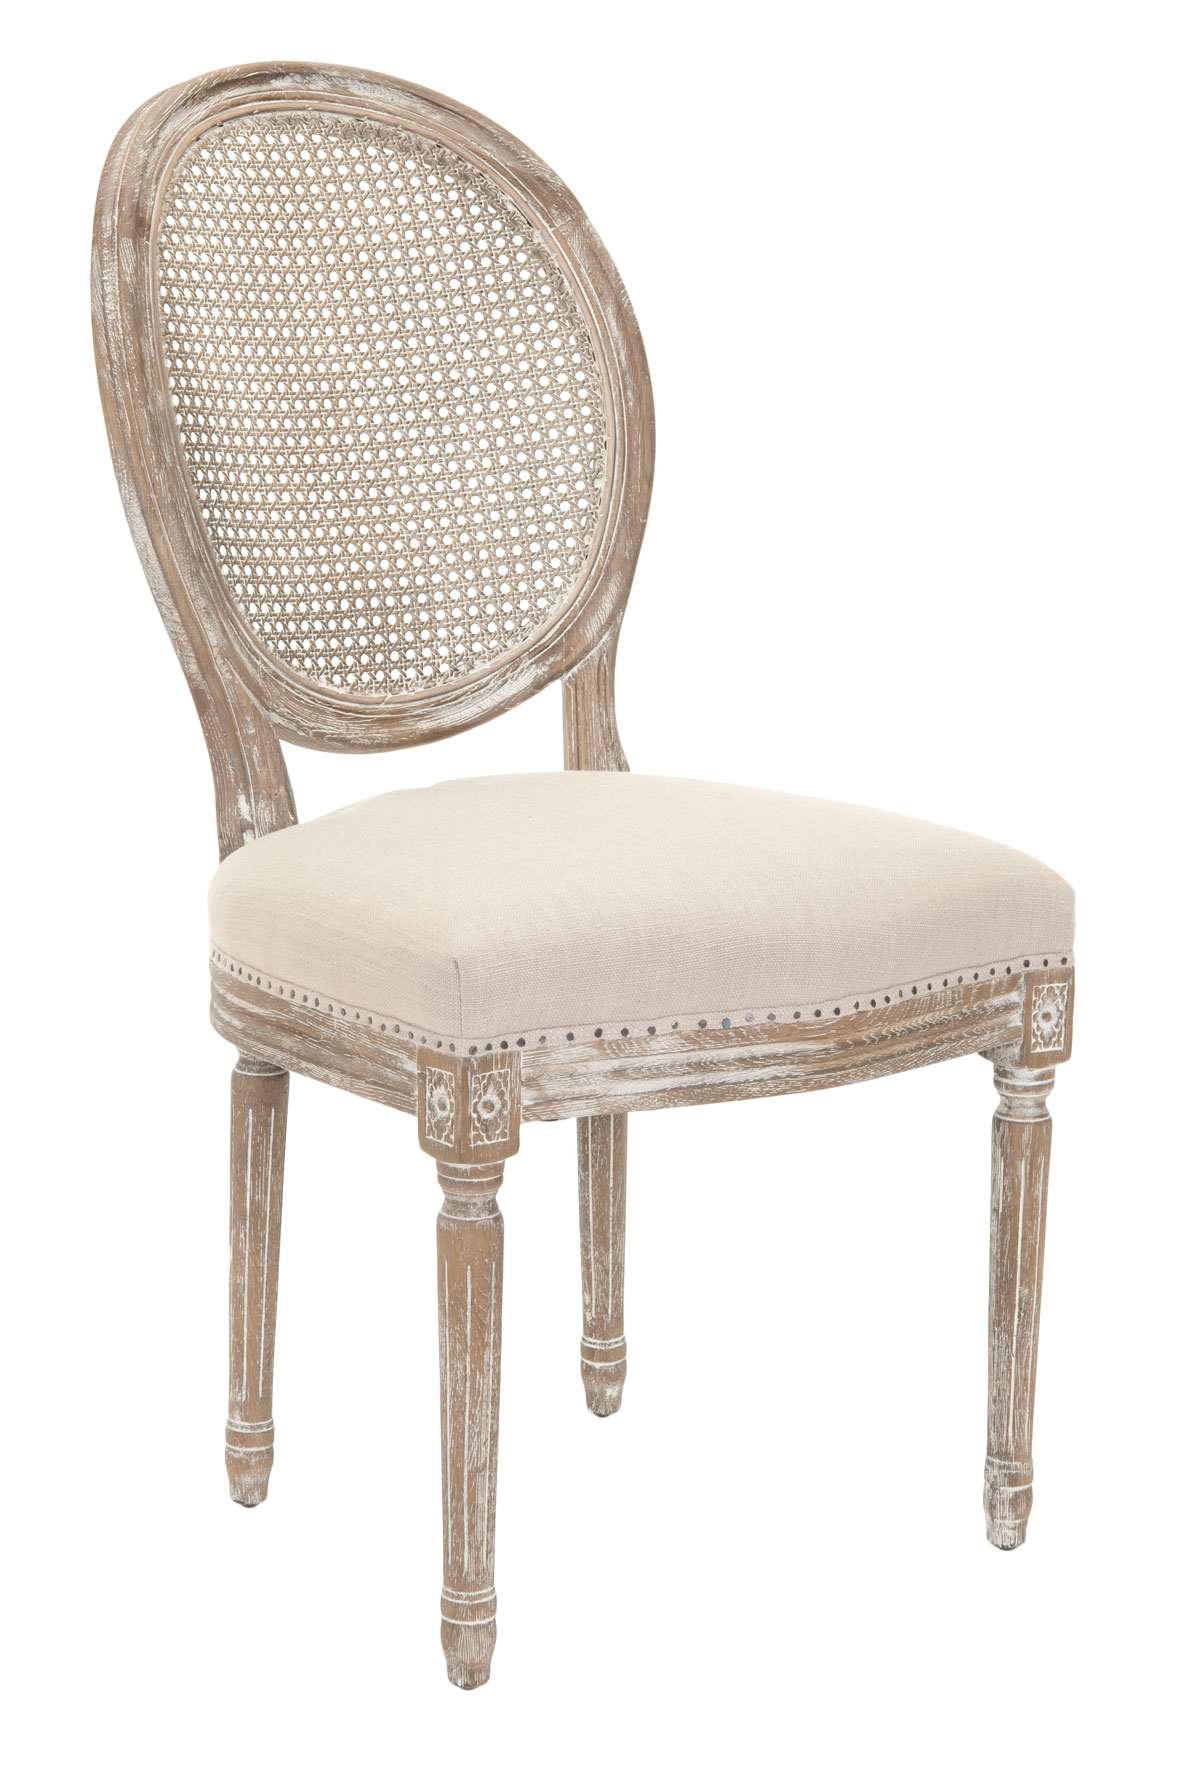 Mcr4547a set2 dining chairs furniture by safavieh - Safavieh dining room chairs ideas ...